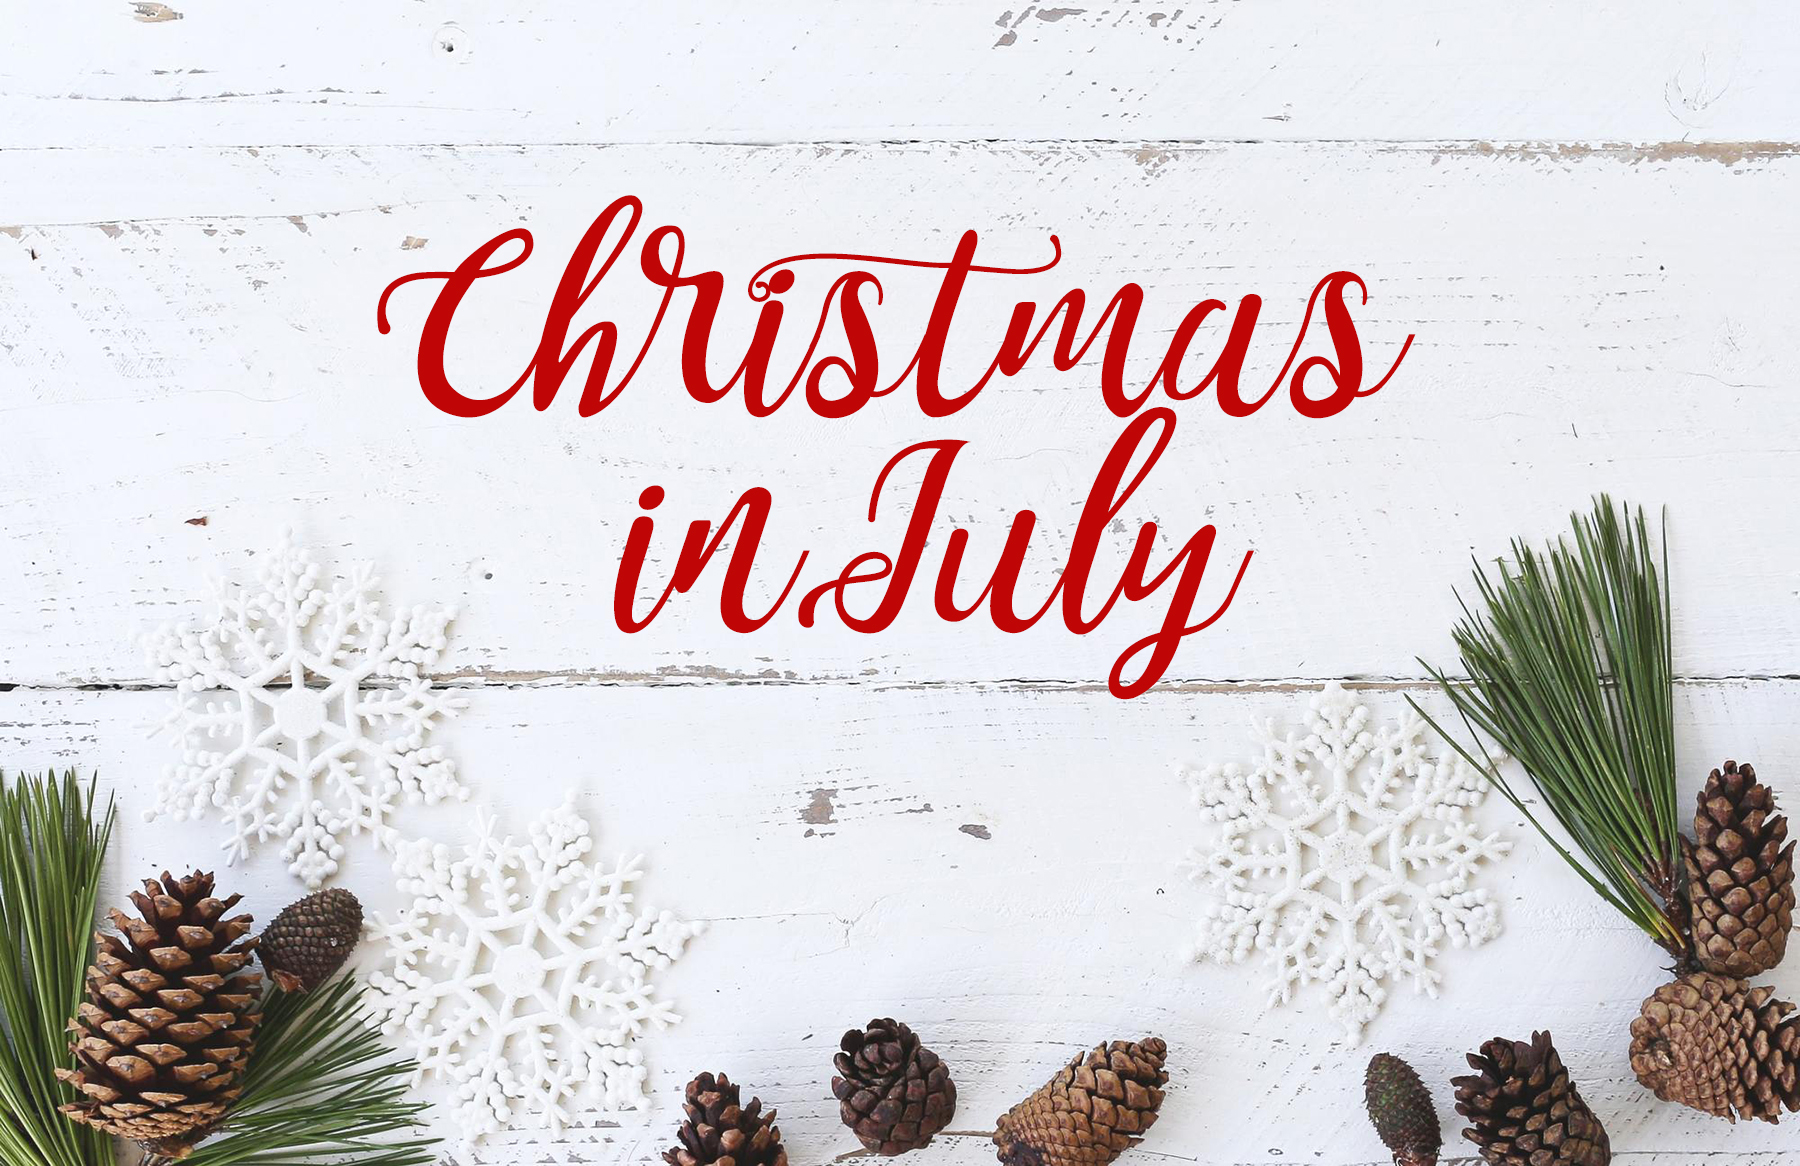 Christmas In July 2019 Images.Merry Christmas In July 2019